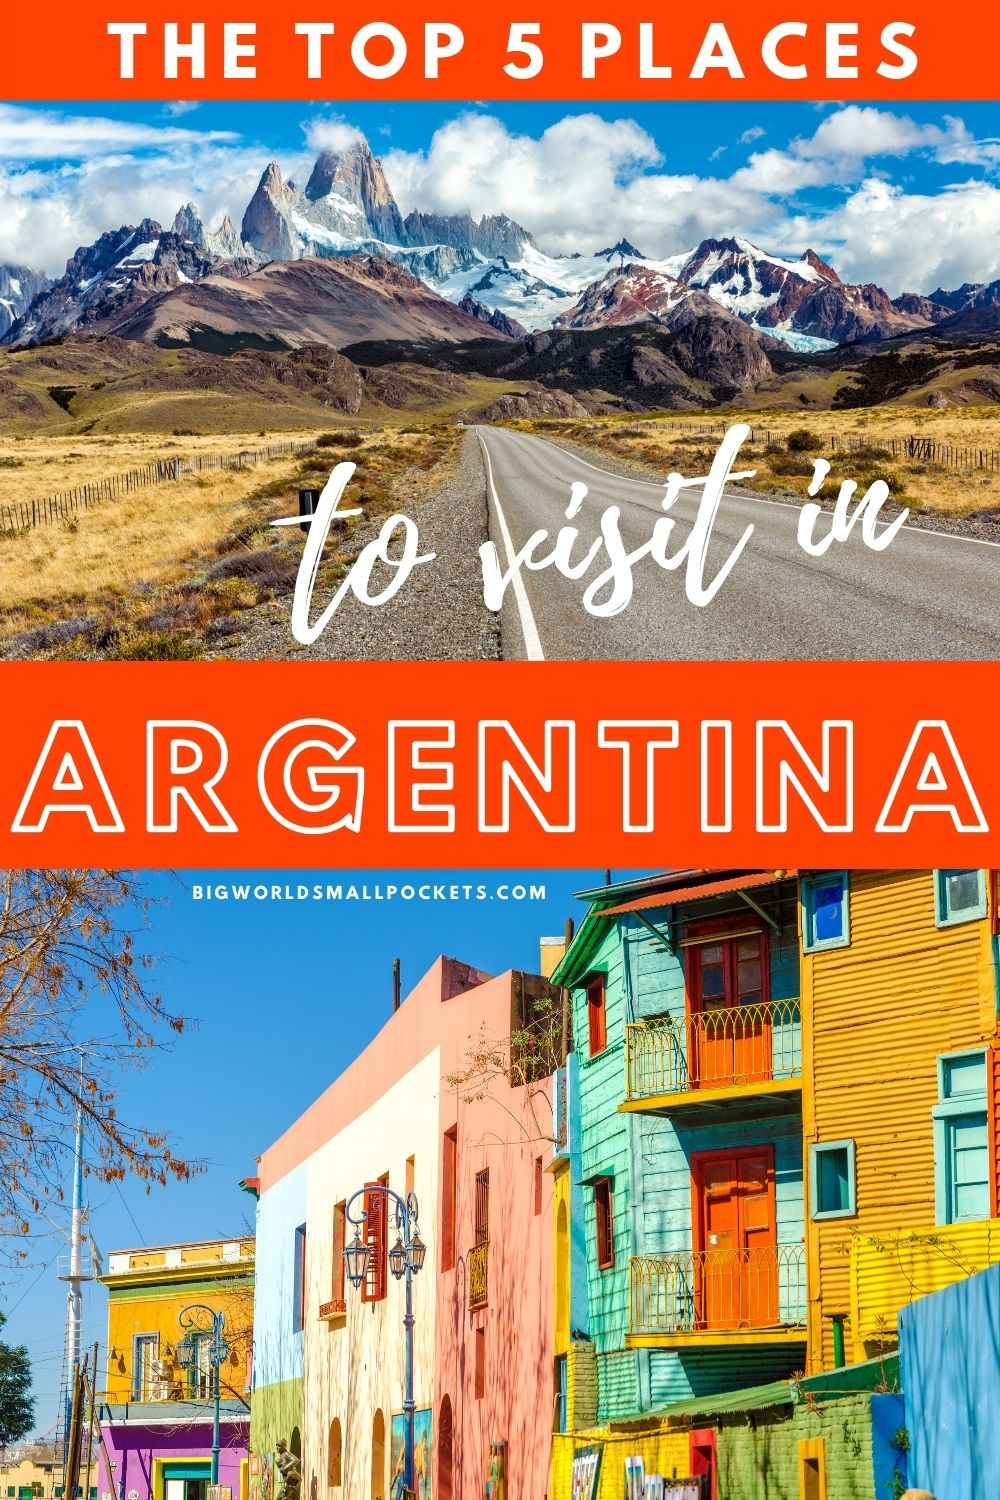 The Top 5 Places to Visit in Argentina